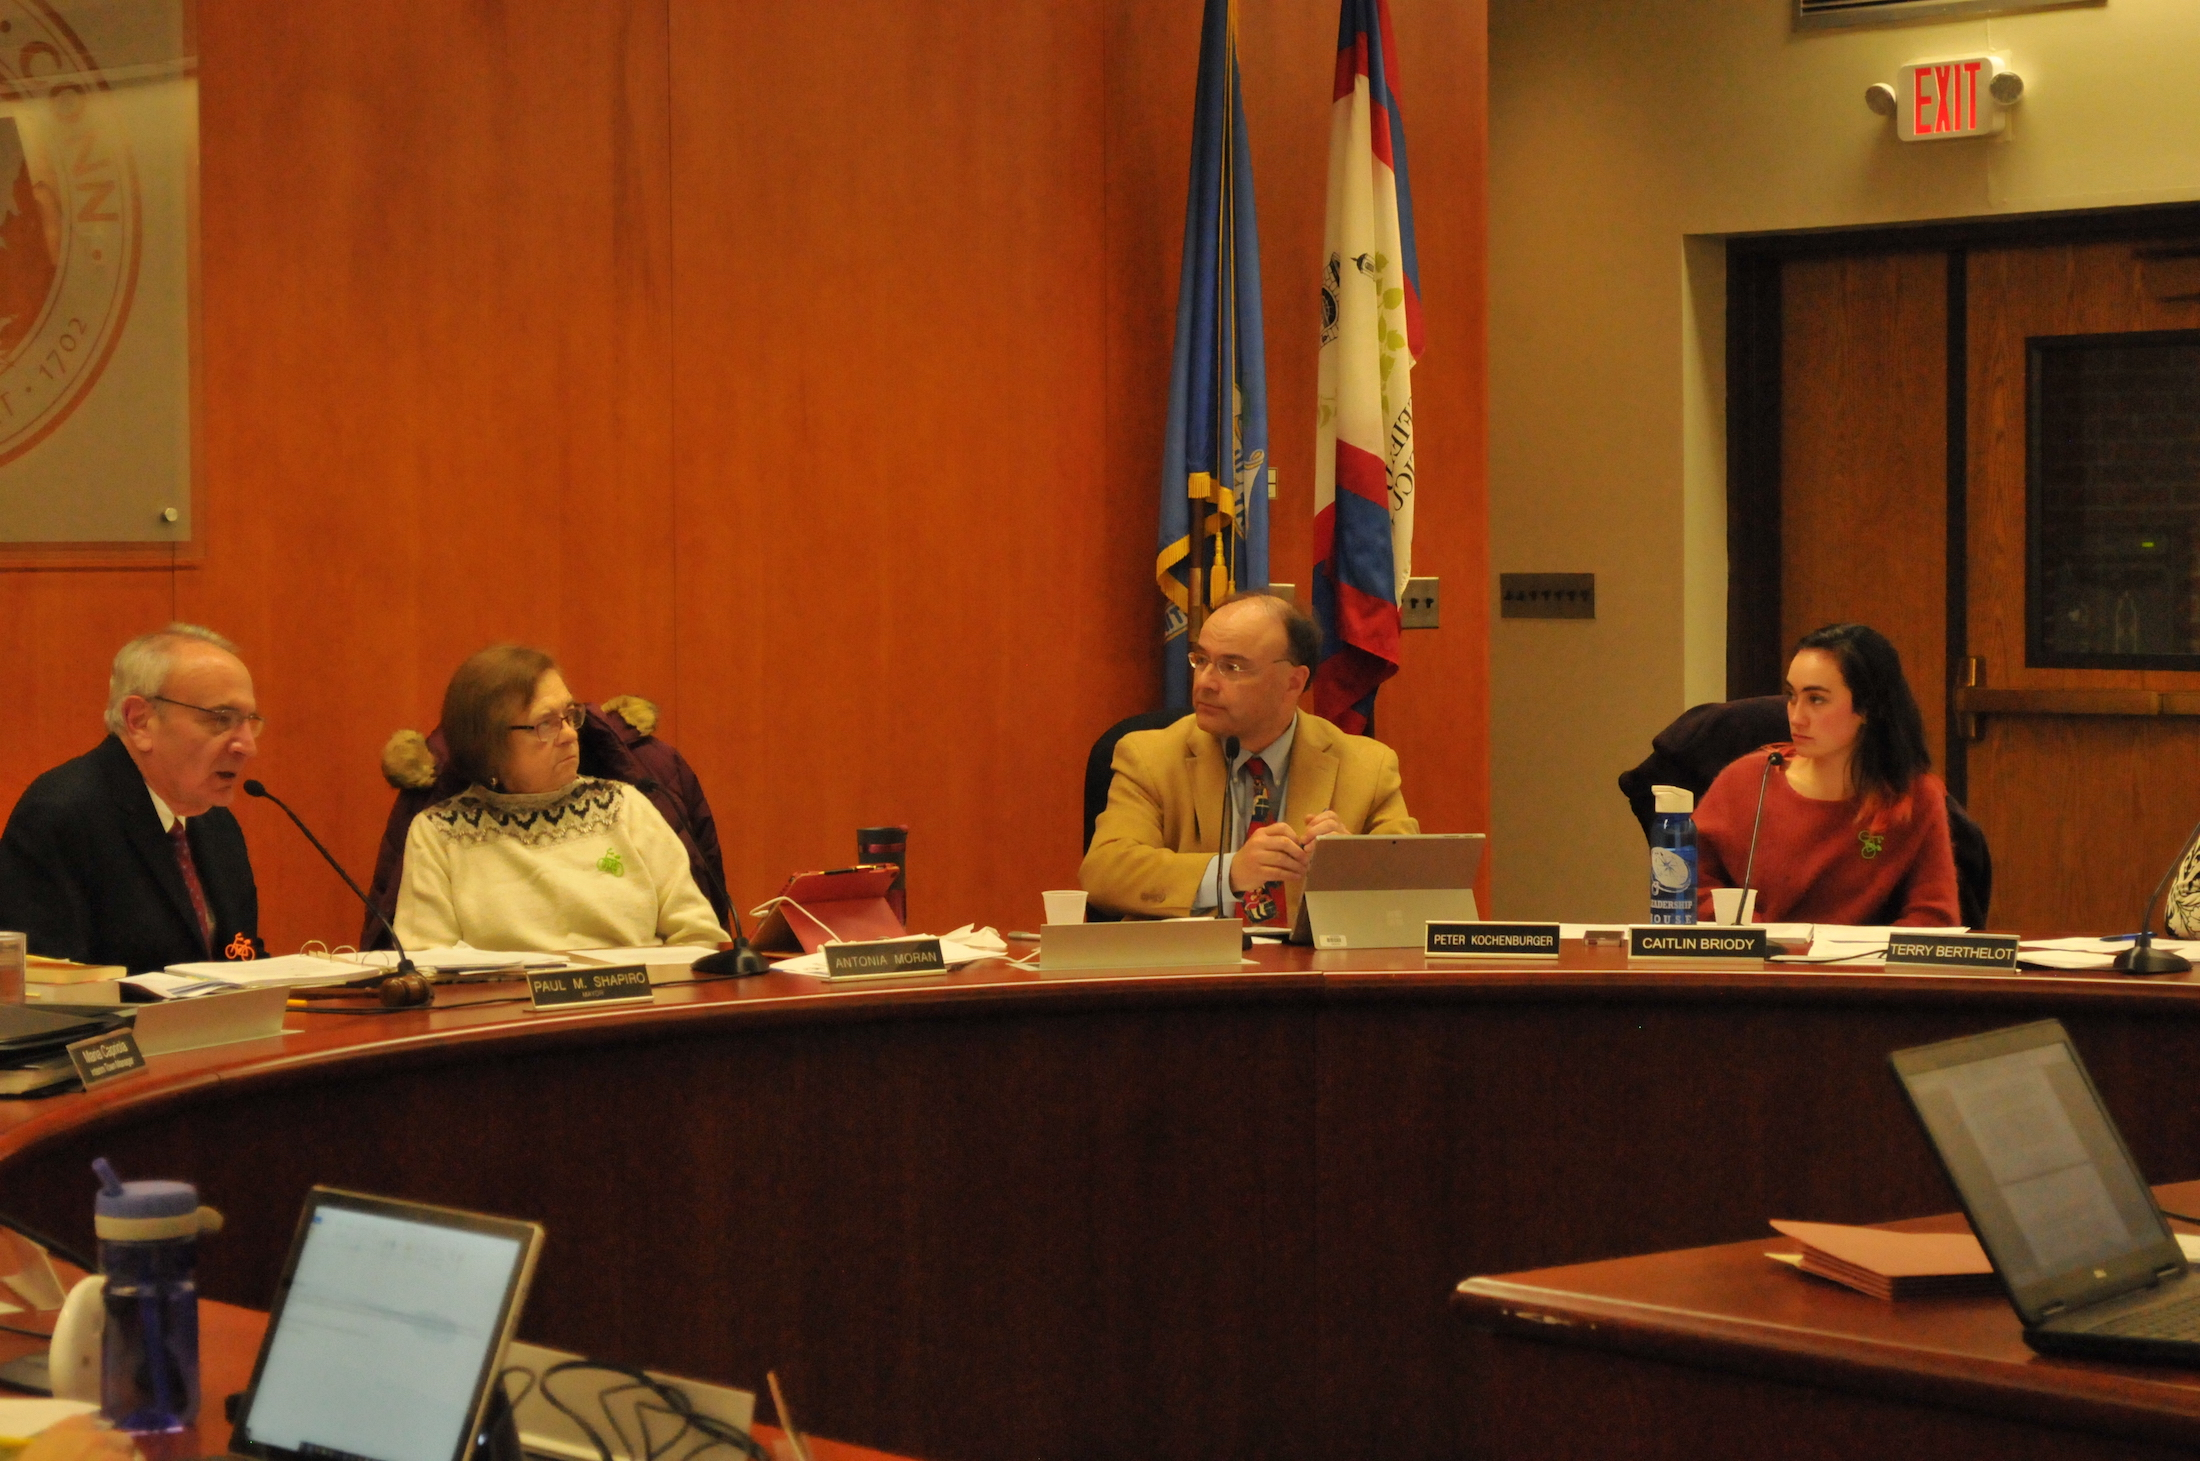 Mansfield Town Council Members discuss concerns over several town ordinances at the Mansfield Town Council on Monday. (Ryan Murace/The Daily Campus)